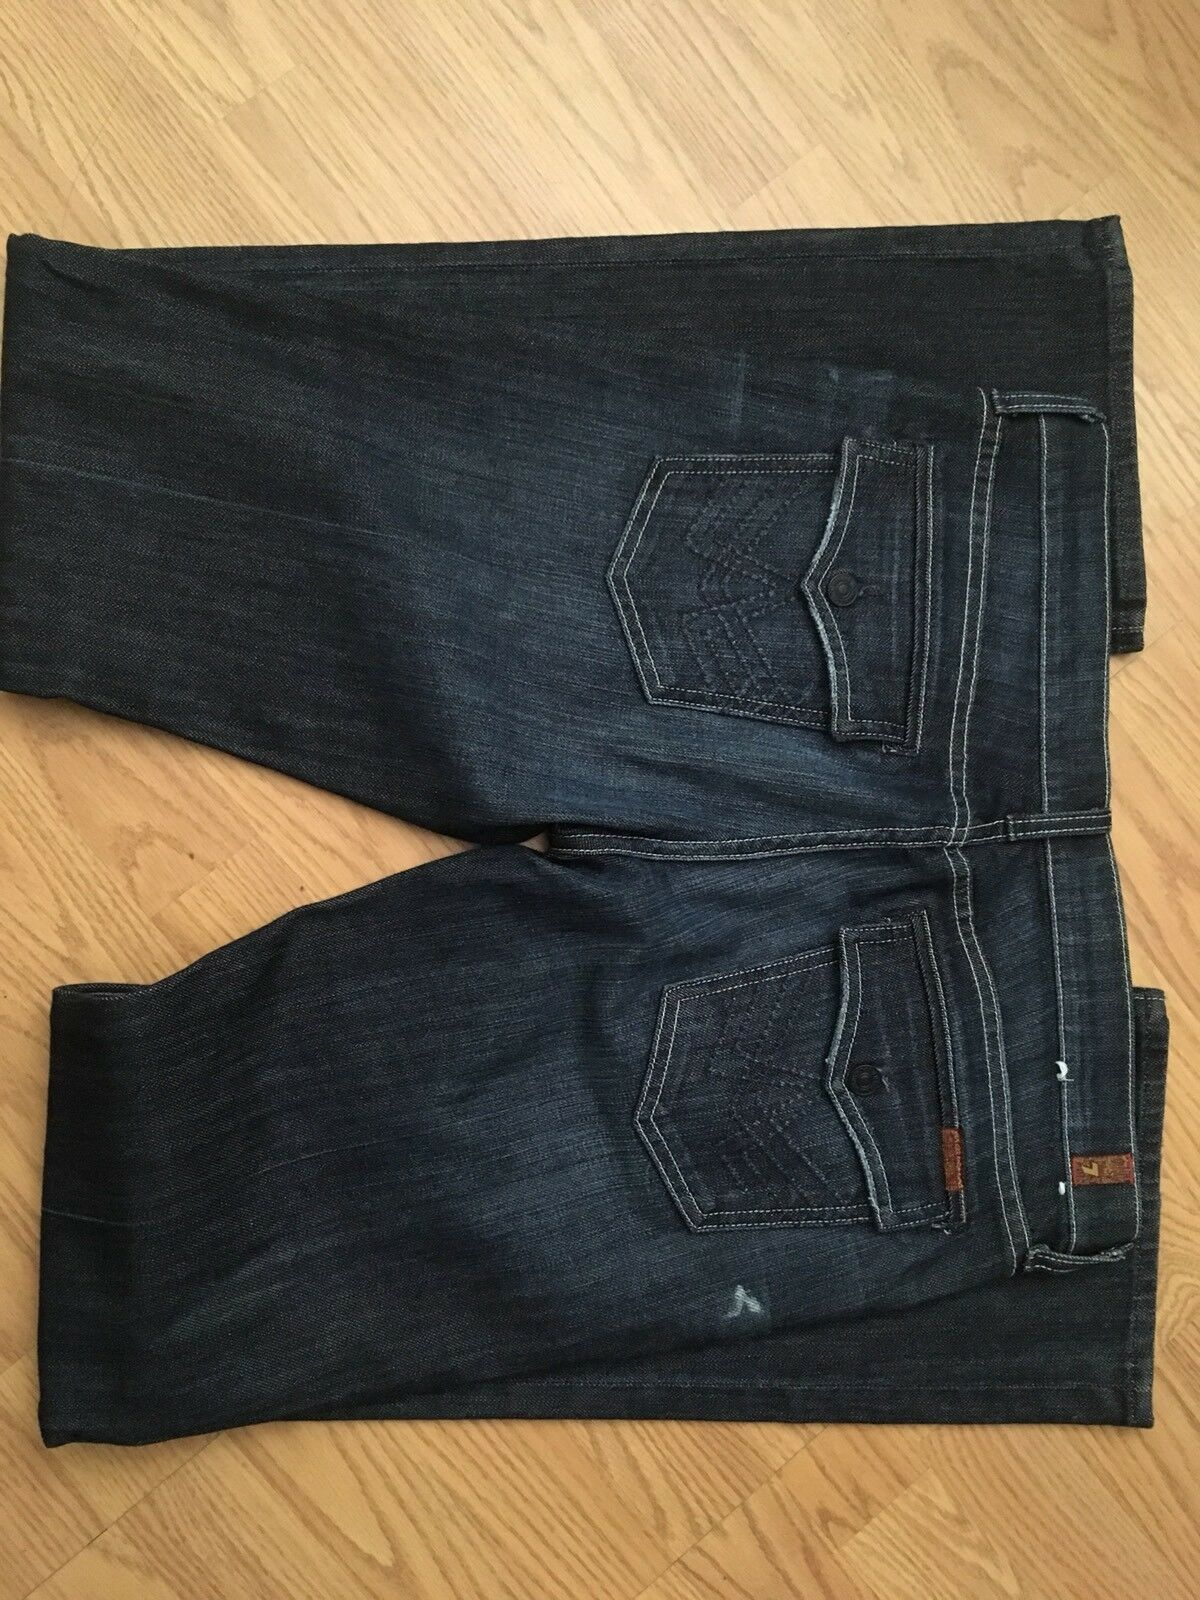 7 For All Mankind womens 32 Bootleg Dark Wash Jeans EUC Seven For All Mankind